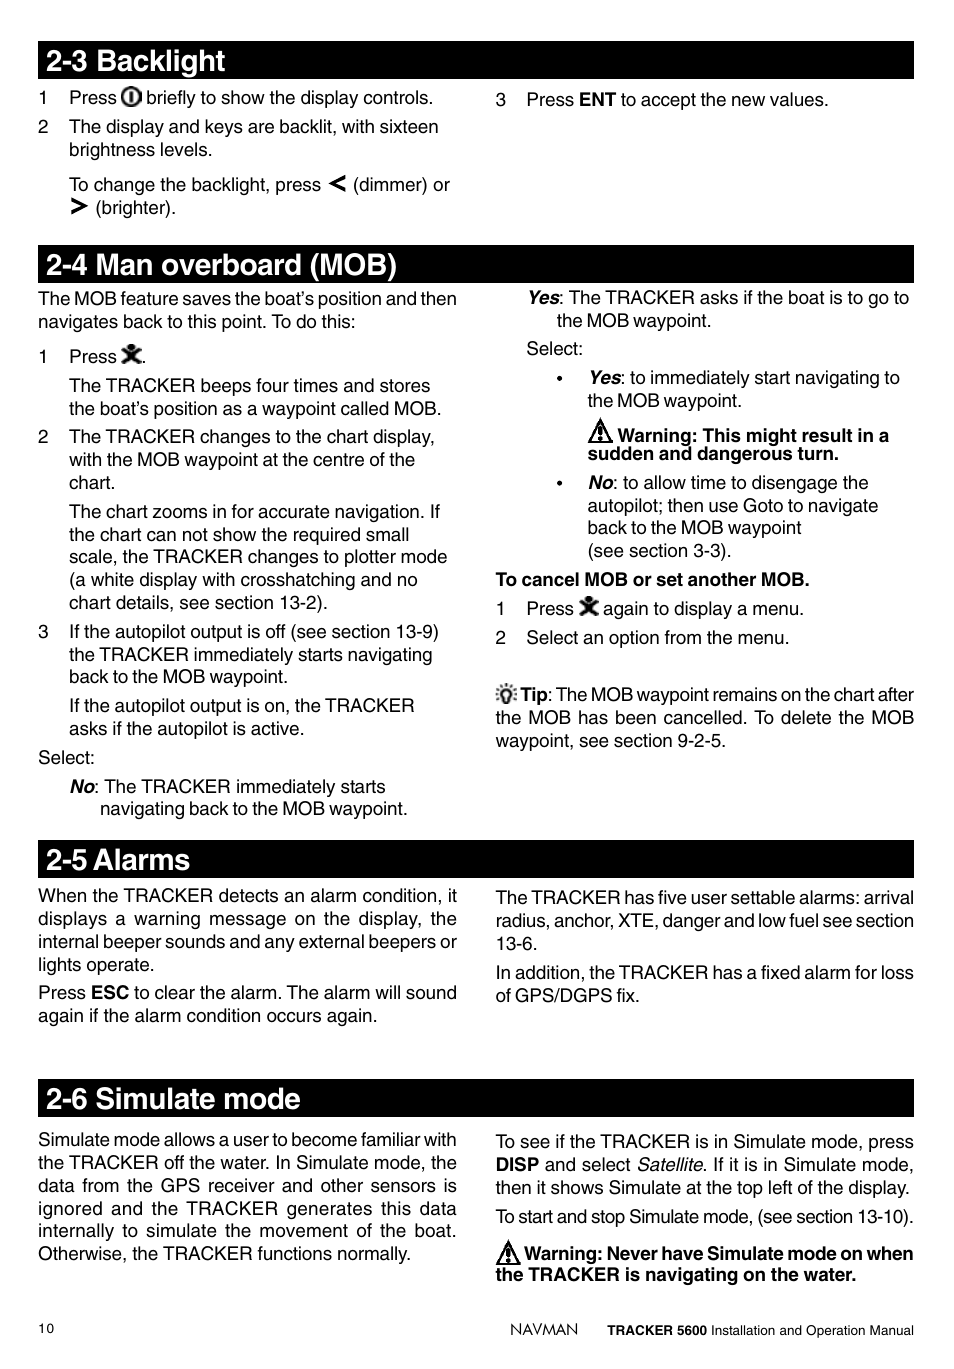 6 simulate mode, 5 alarms, 4 man overboard (mob) | Navman tracker plotter  TRACKER 5600 User Manual | Page 10 / 42